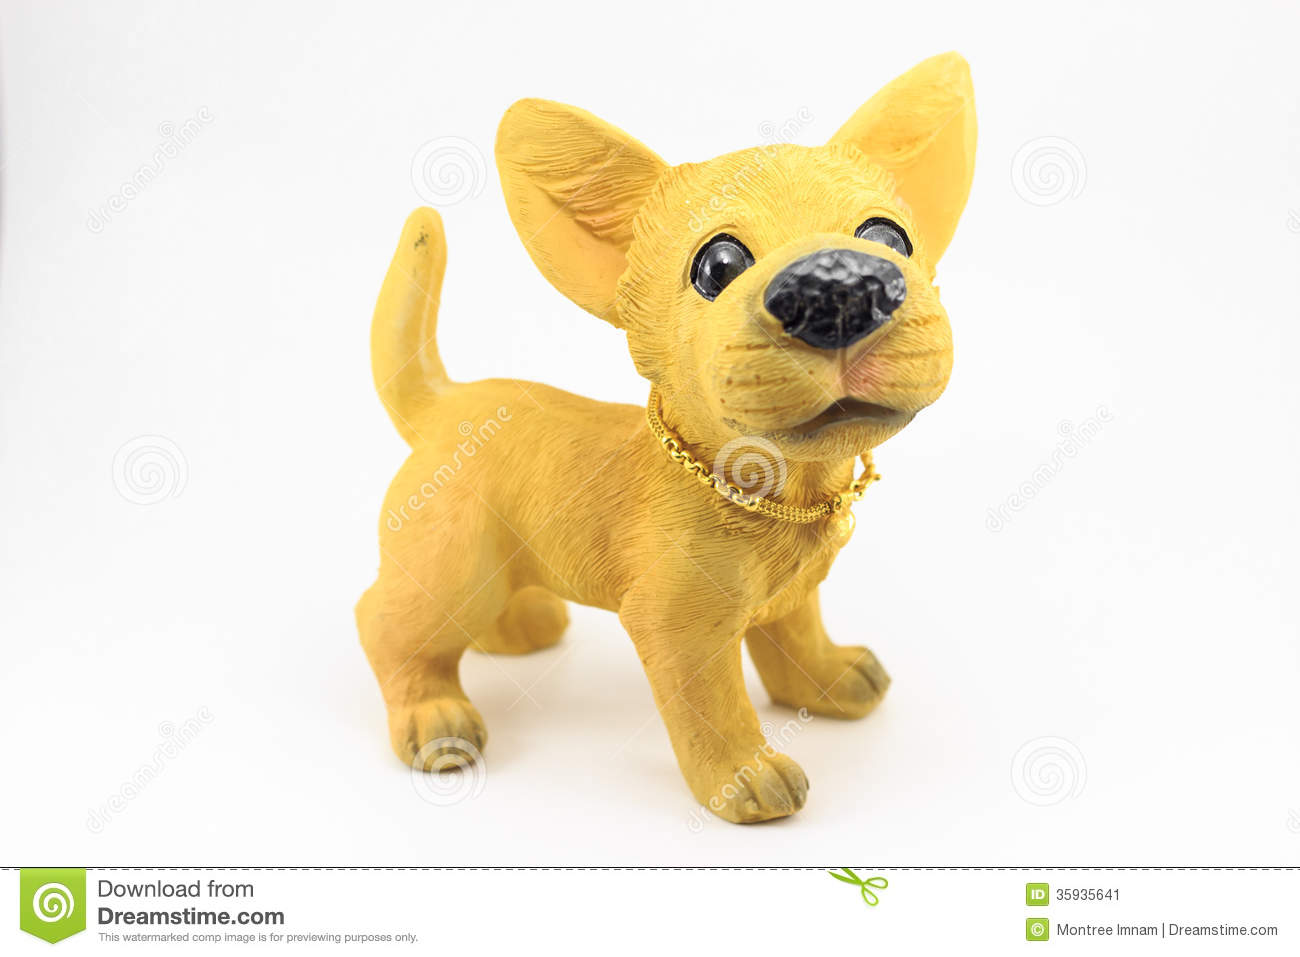 Plaster Dog Stock Image - Image: 35935641